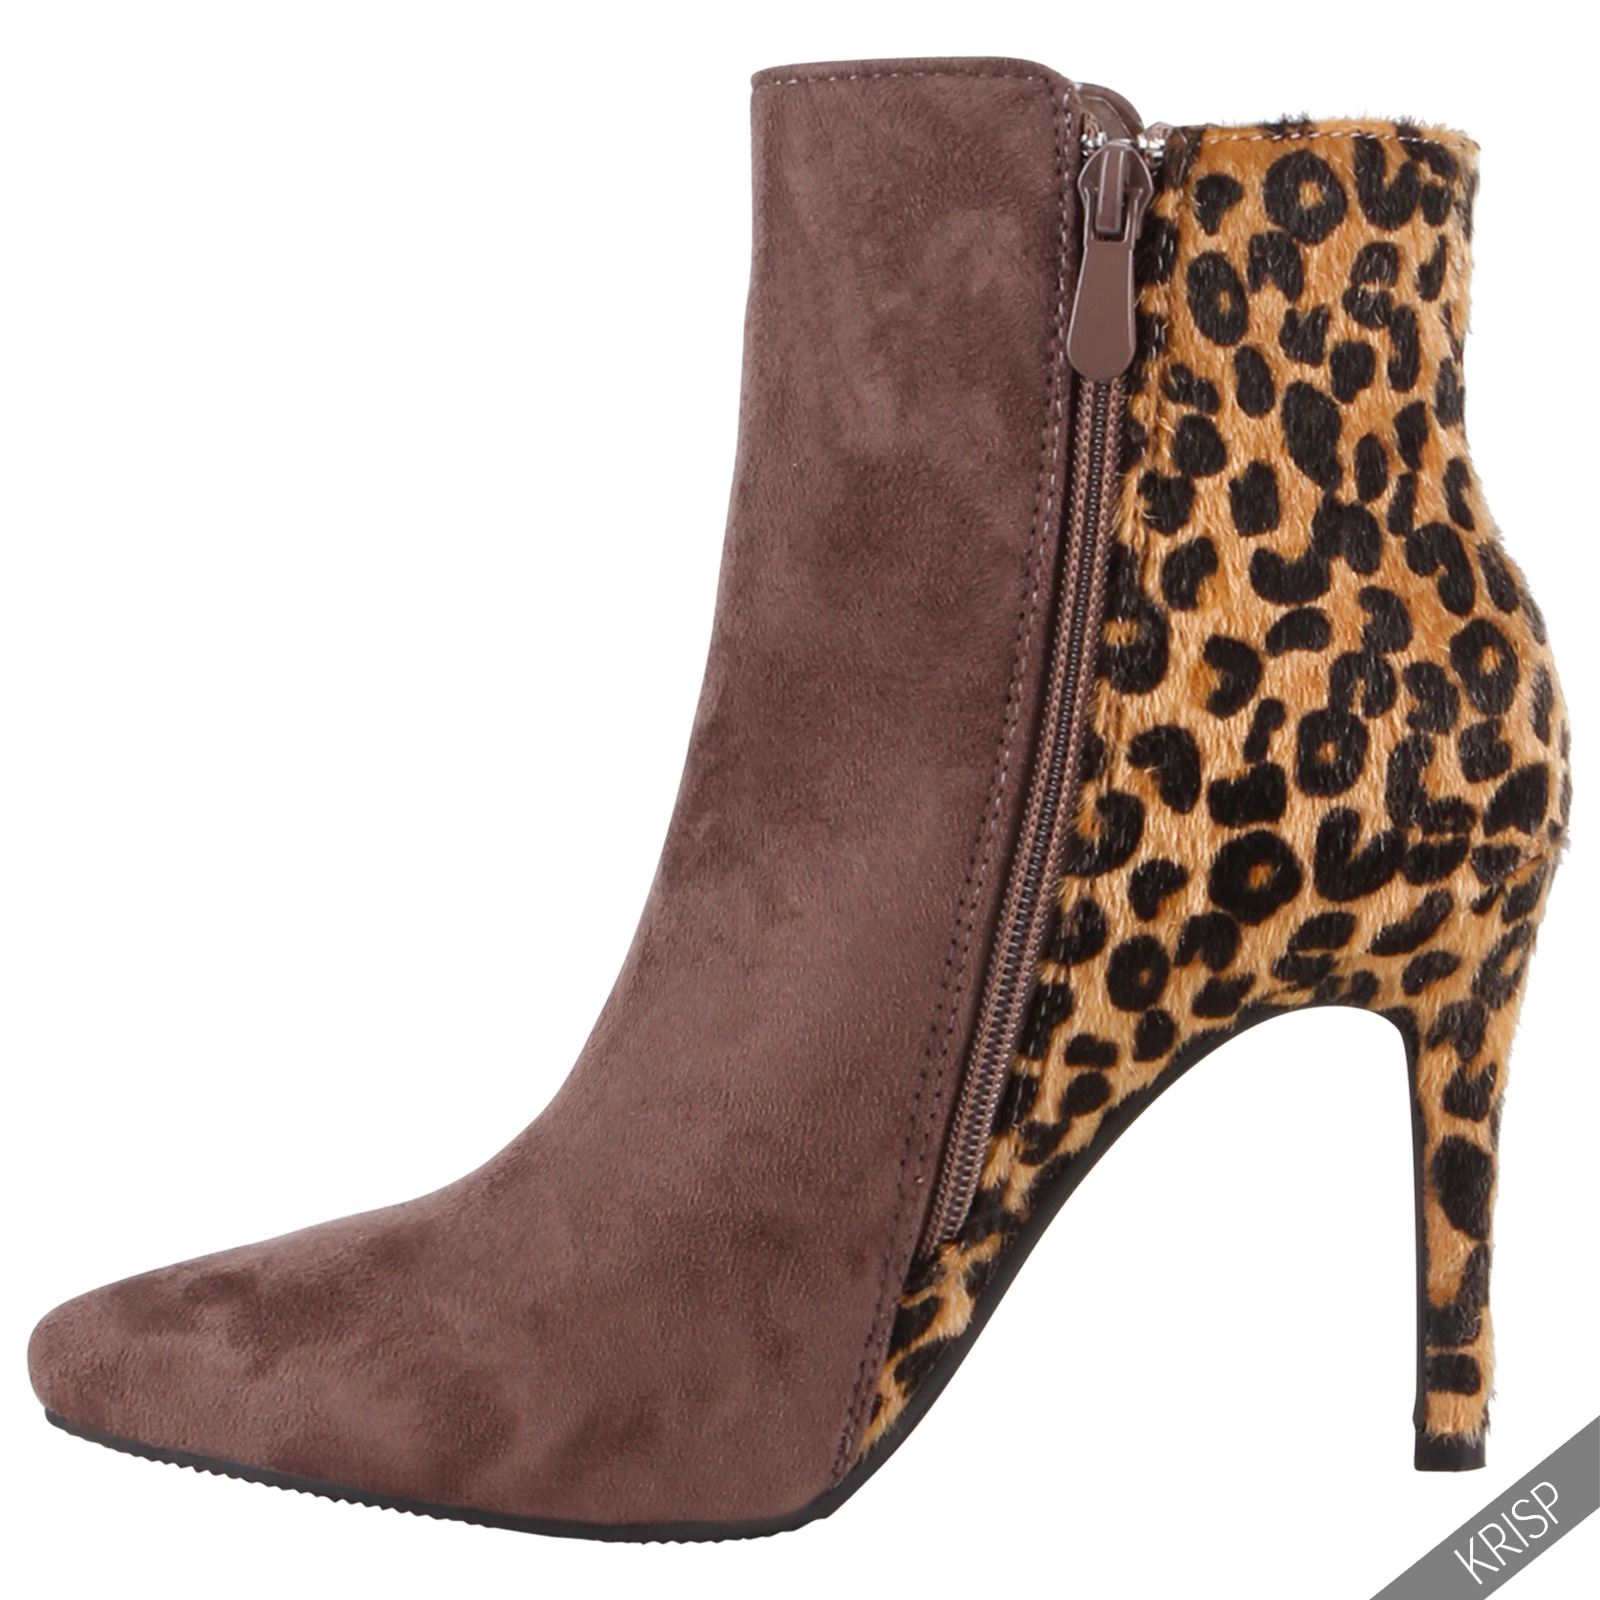 Shop leopard print heel boots at Neiman Marcus, where you will find free shipping on the latest in fashion from top designers.